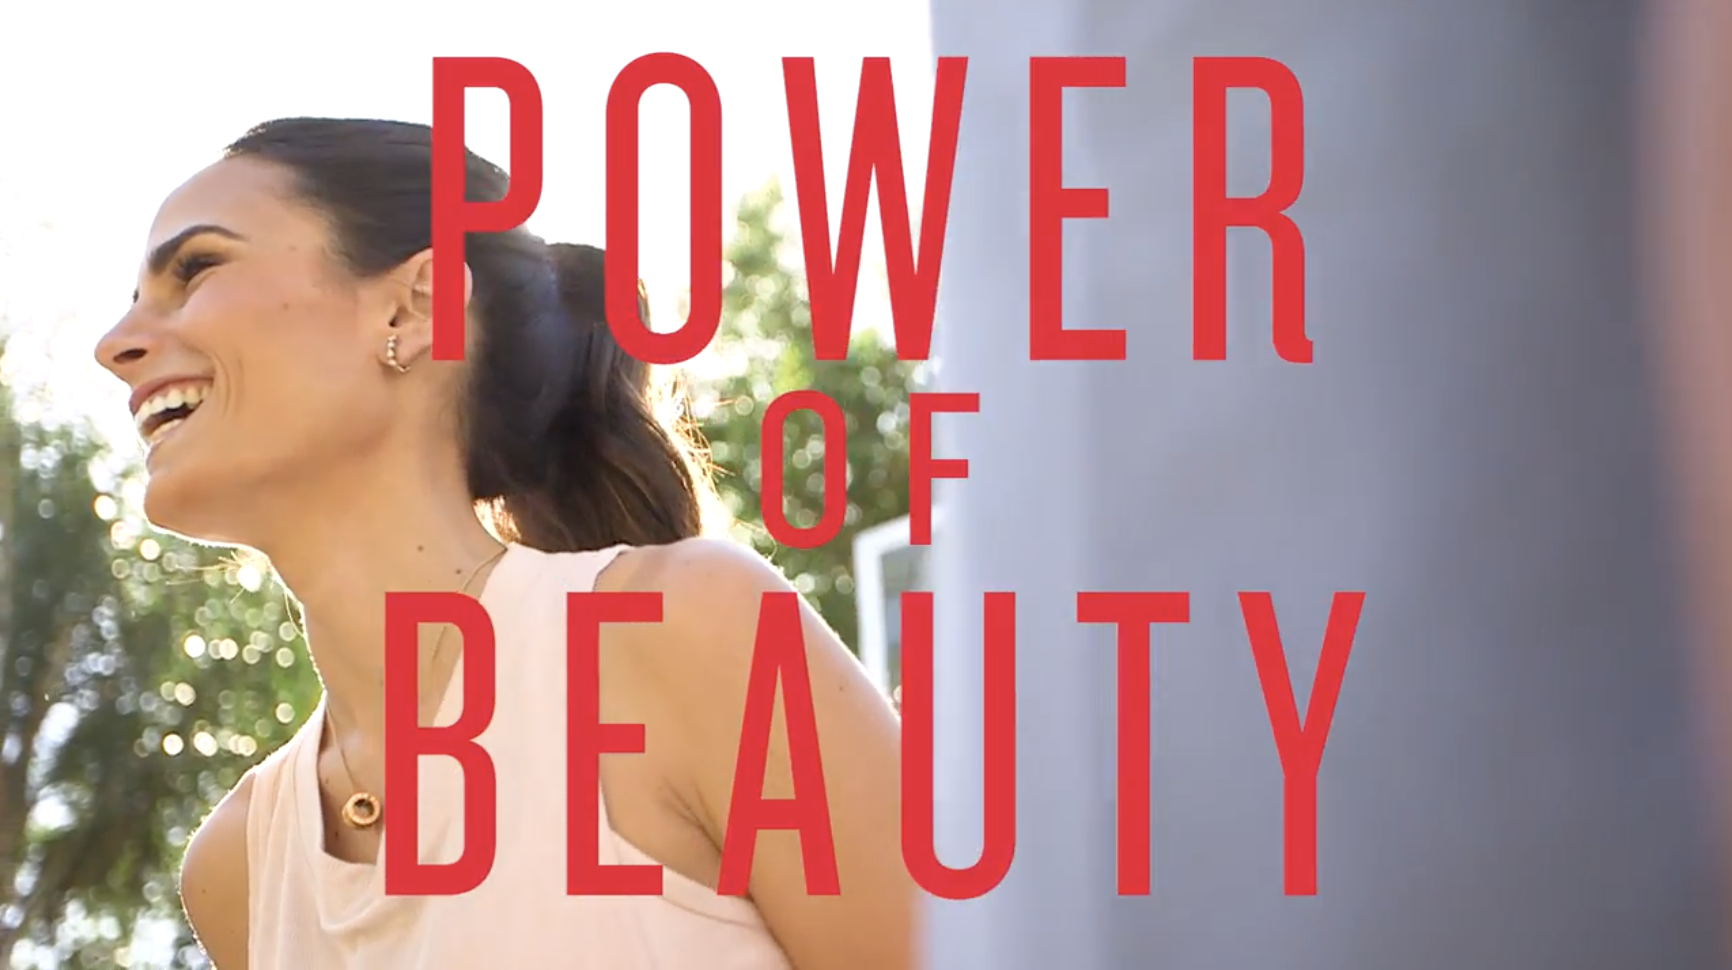 'Power of Beauty' for Allure dir. Elizabeth Lippman